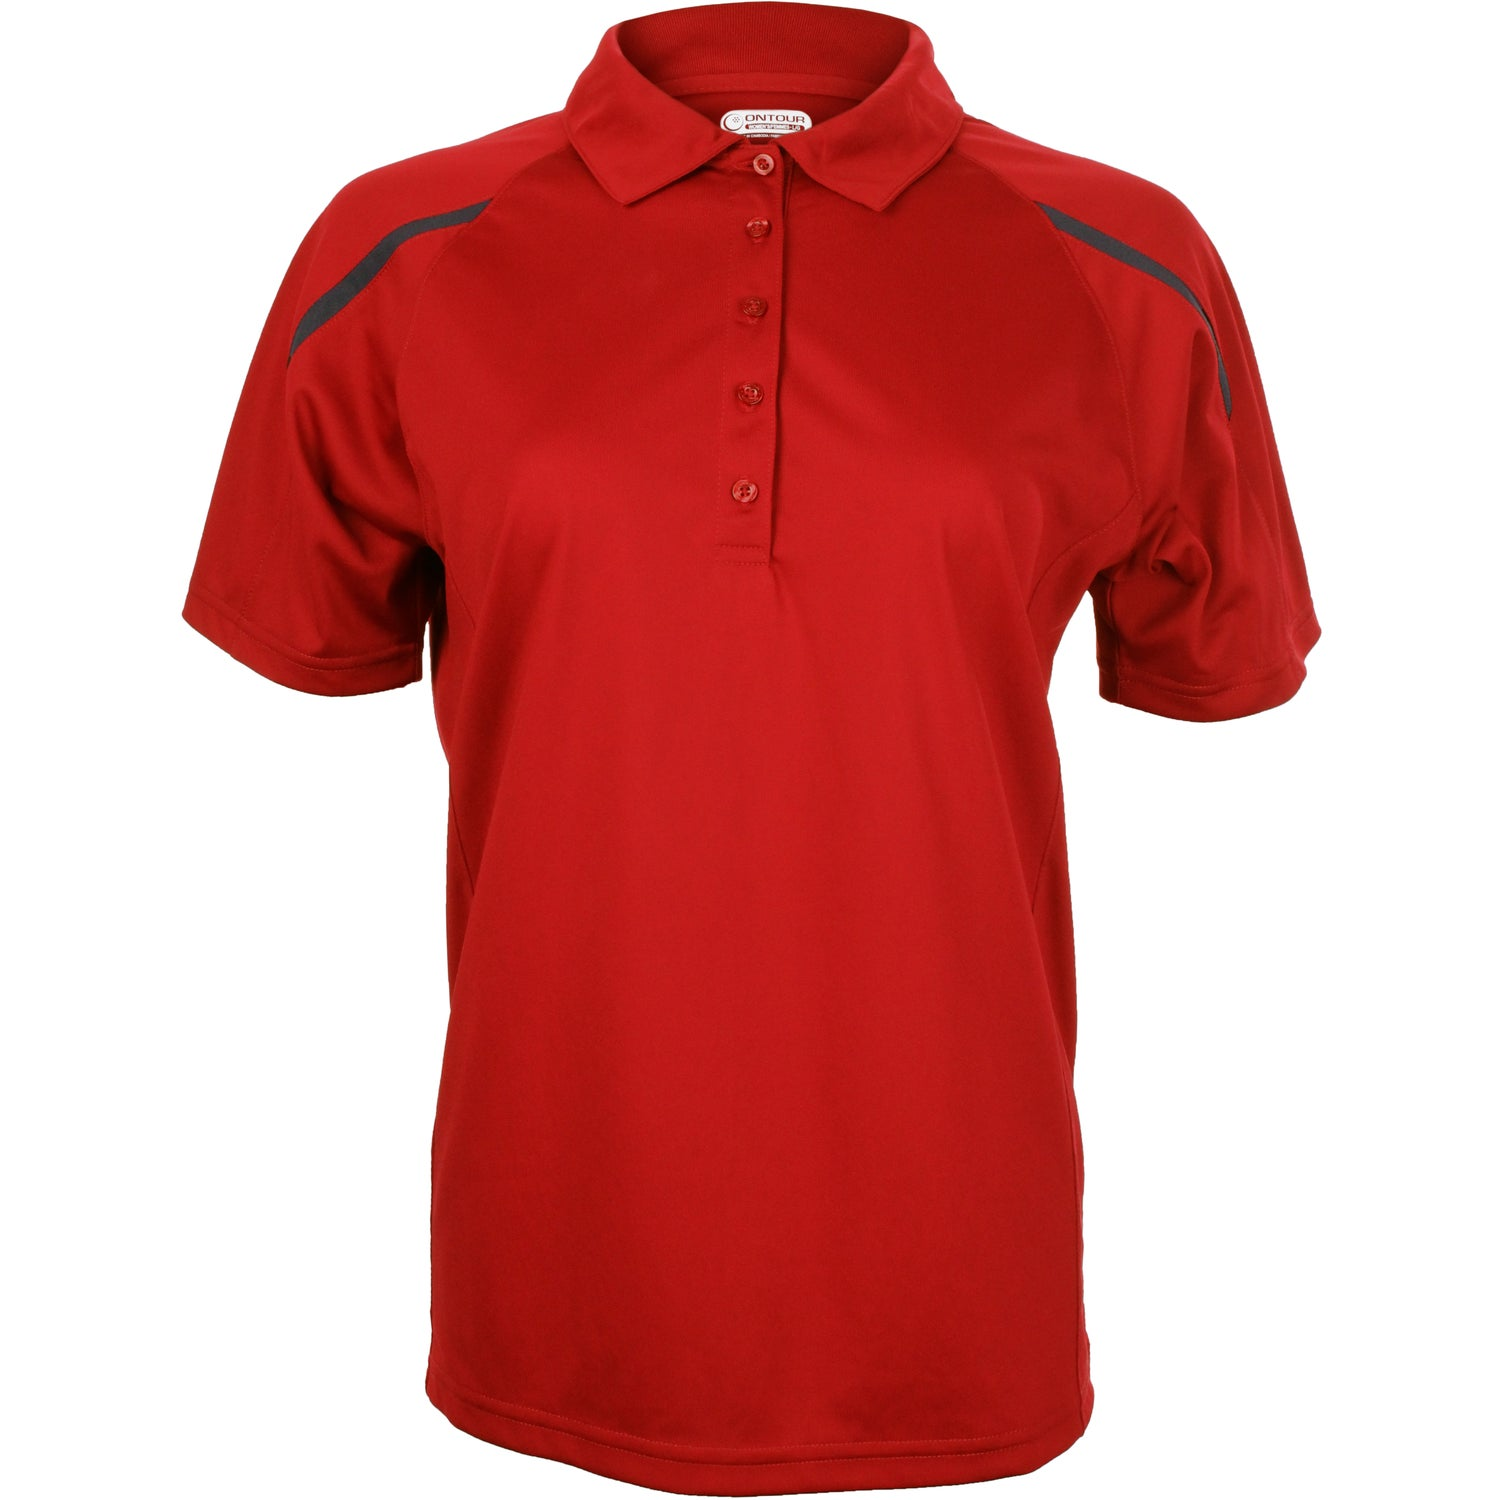 Promotional women 39 s nyos short sleeve polo shirt by for Custom embroidered polo shirts no minimum order